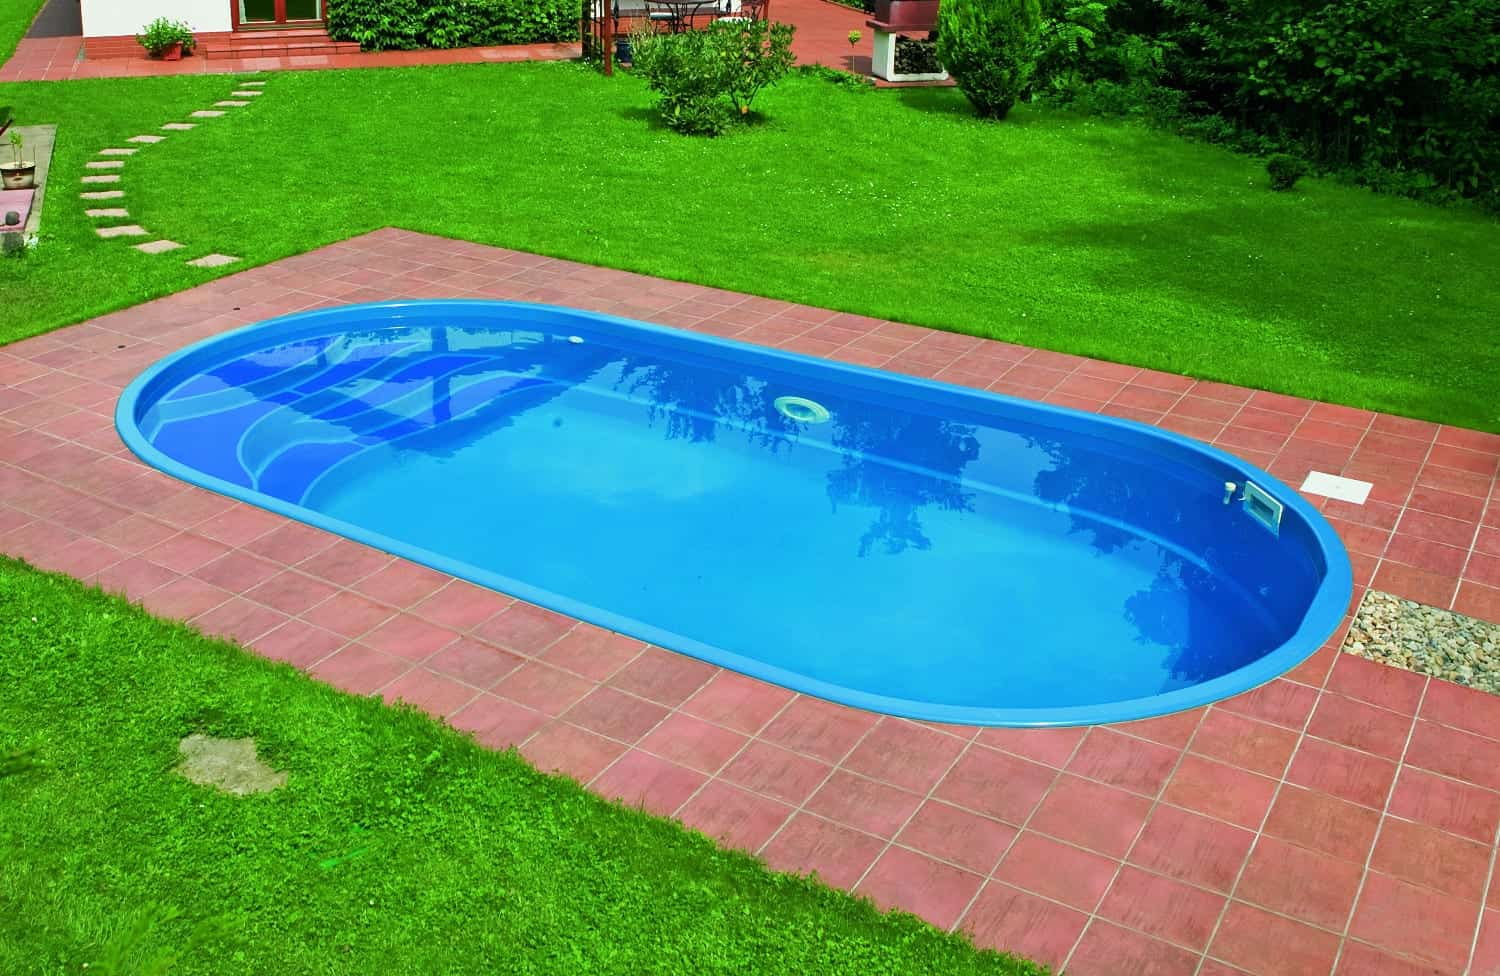 Ikaros 6.0m X 3.00m X 1.40m One Piece Fibreglass Pool